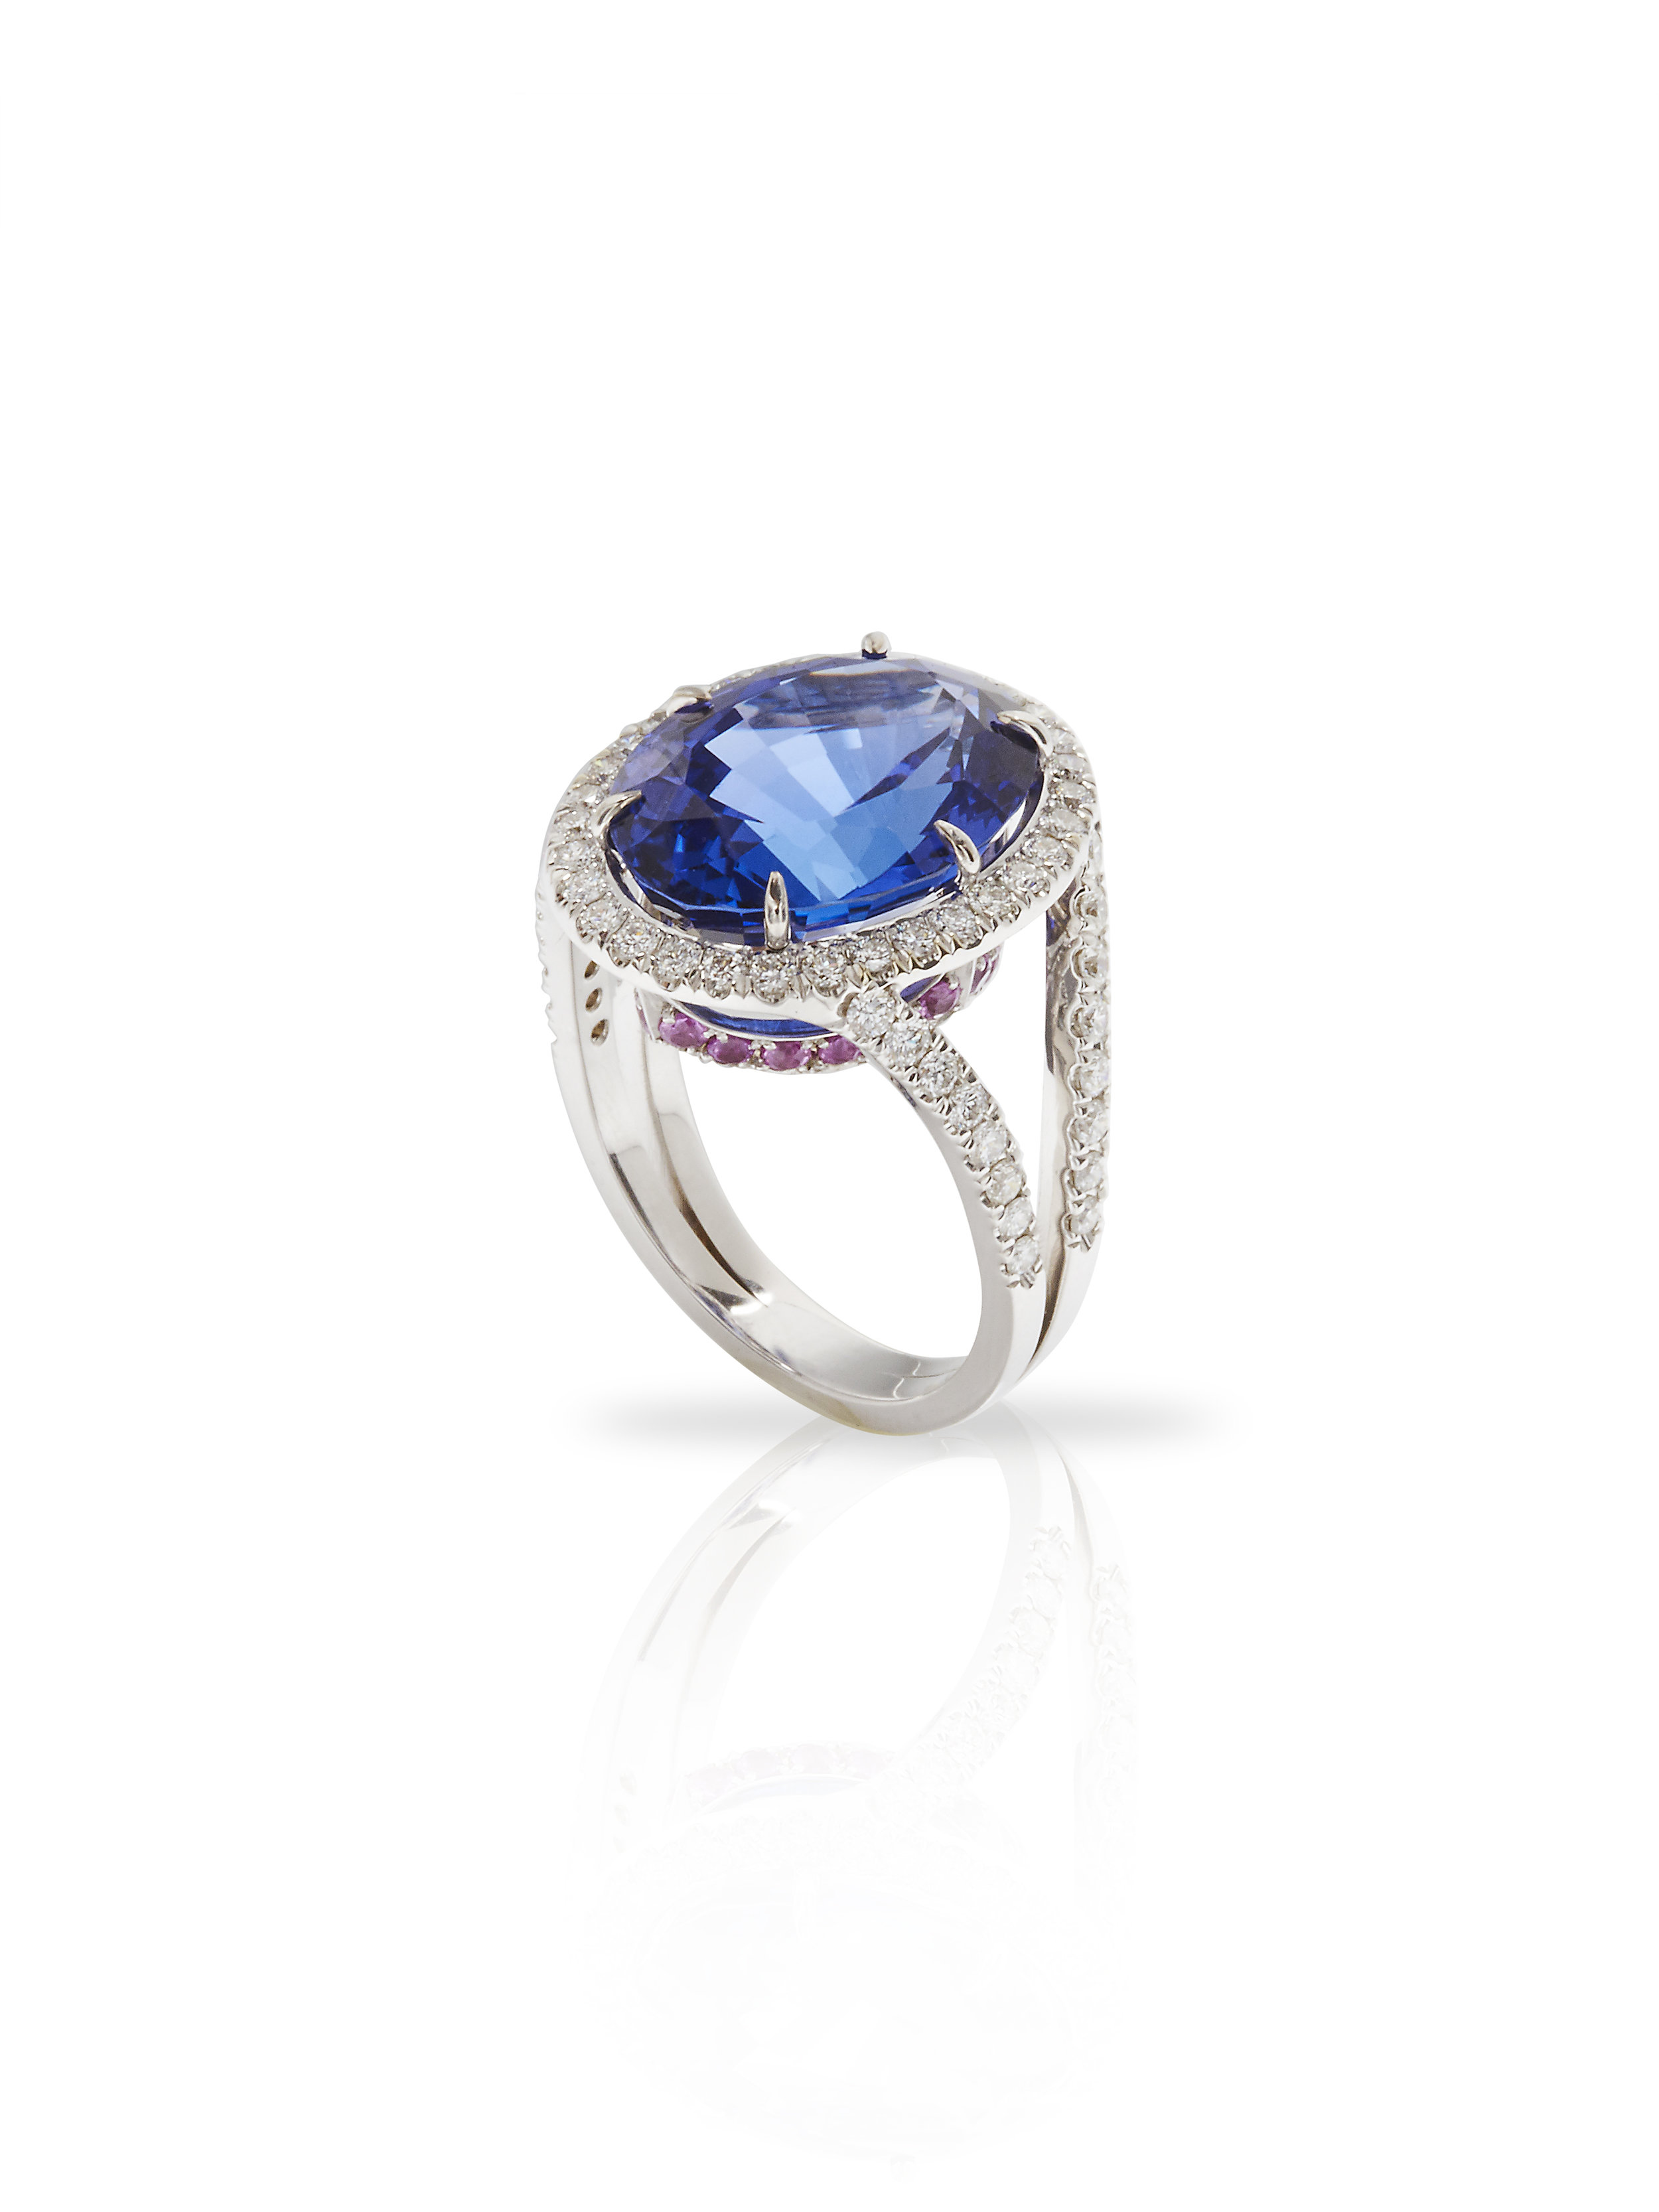 SARA RING   1.20 CT OF DIAMONDS 10.57 CT OF TANZANITE 0.8 CT OF PINK SAPPHIRES      Contact for inquiry